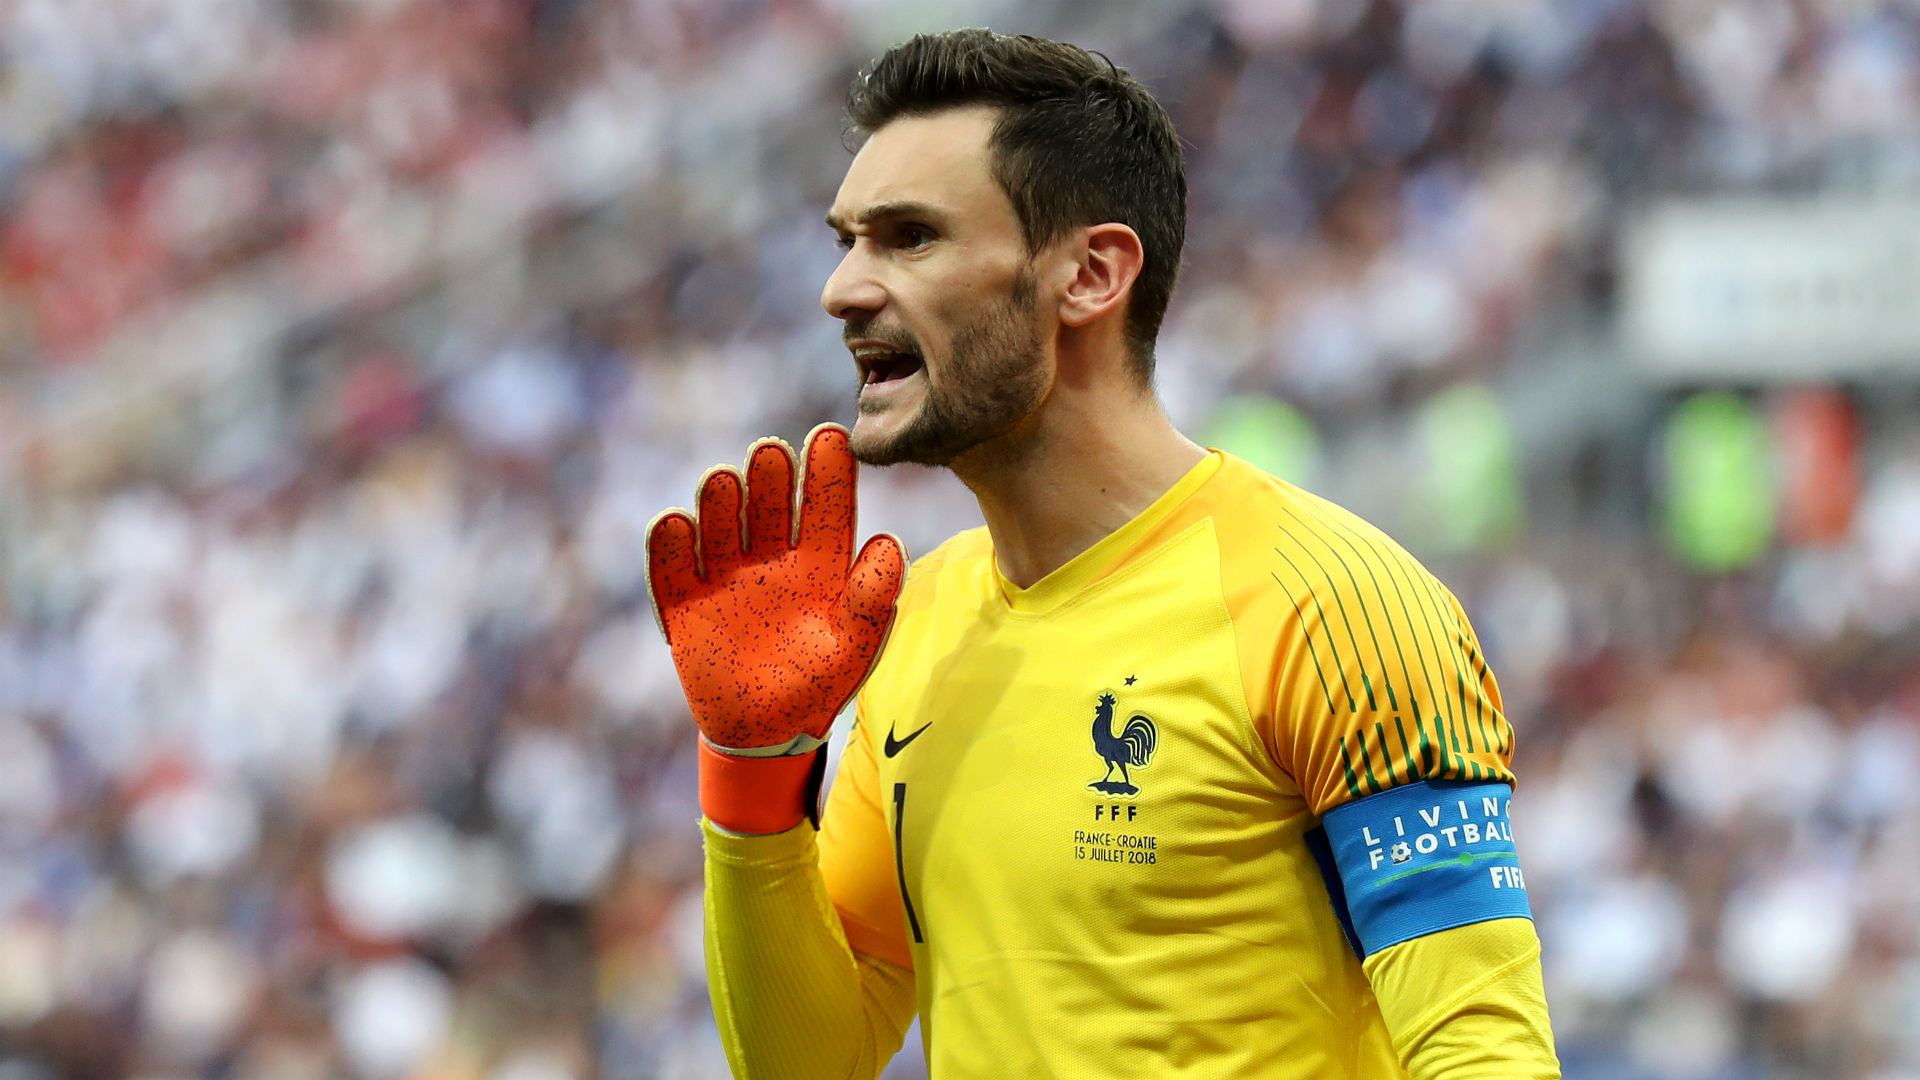 Hugo Lloris France Croatia World Cup final 2018